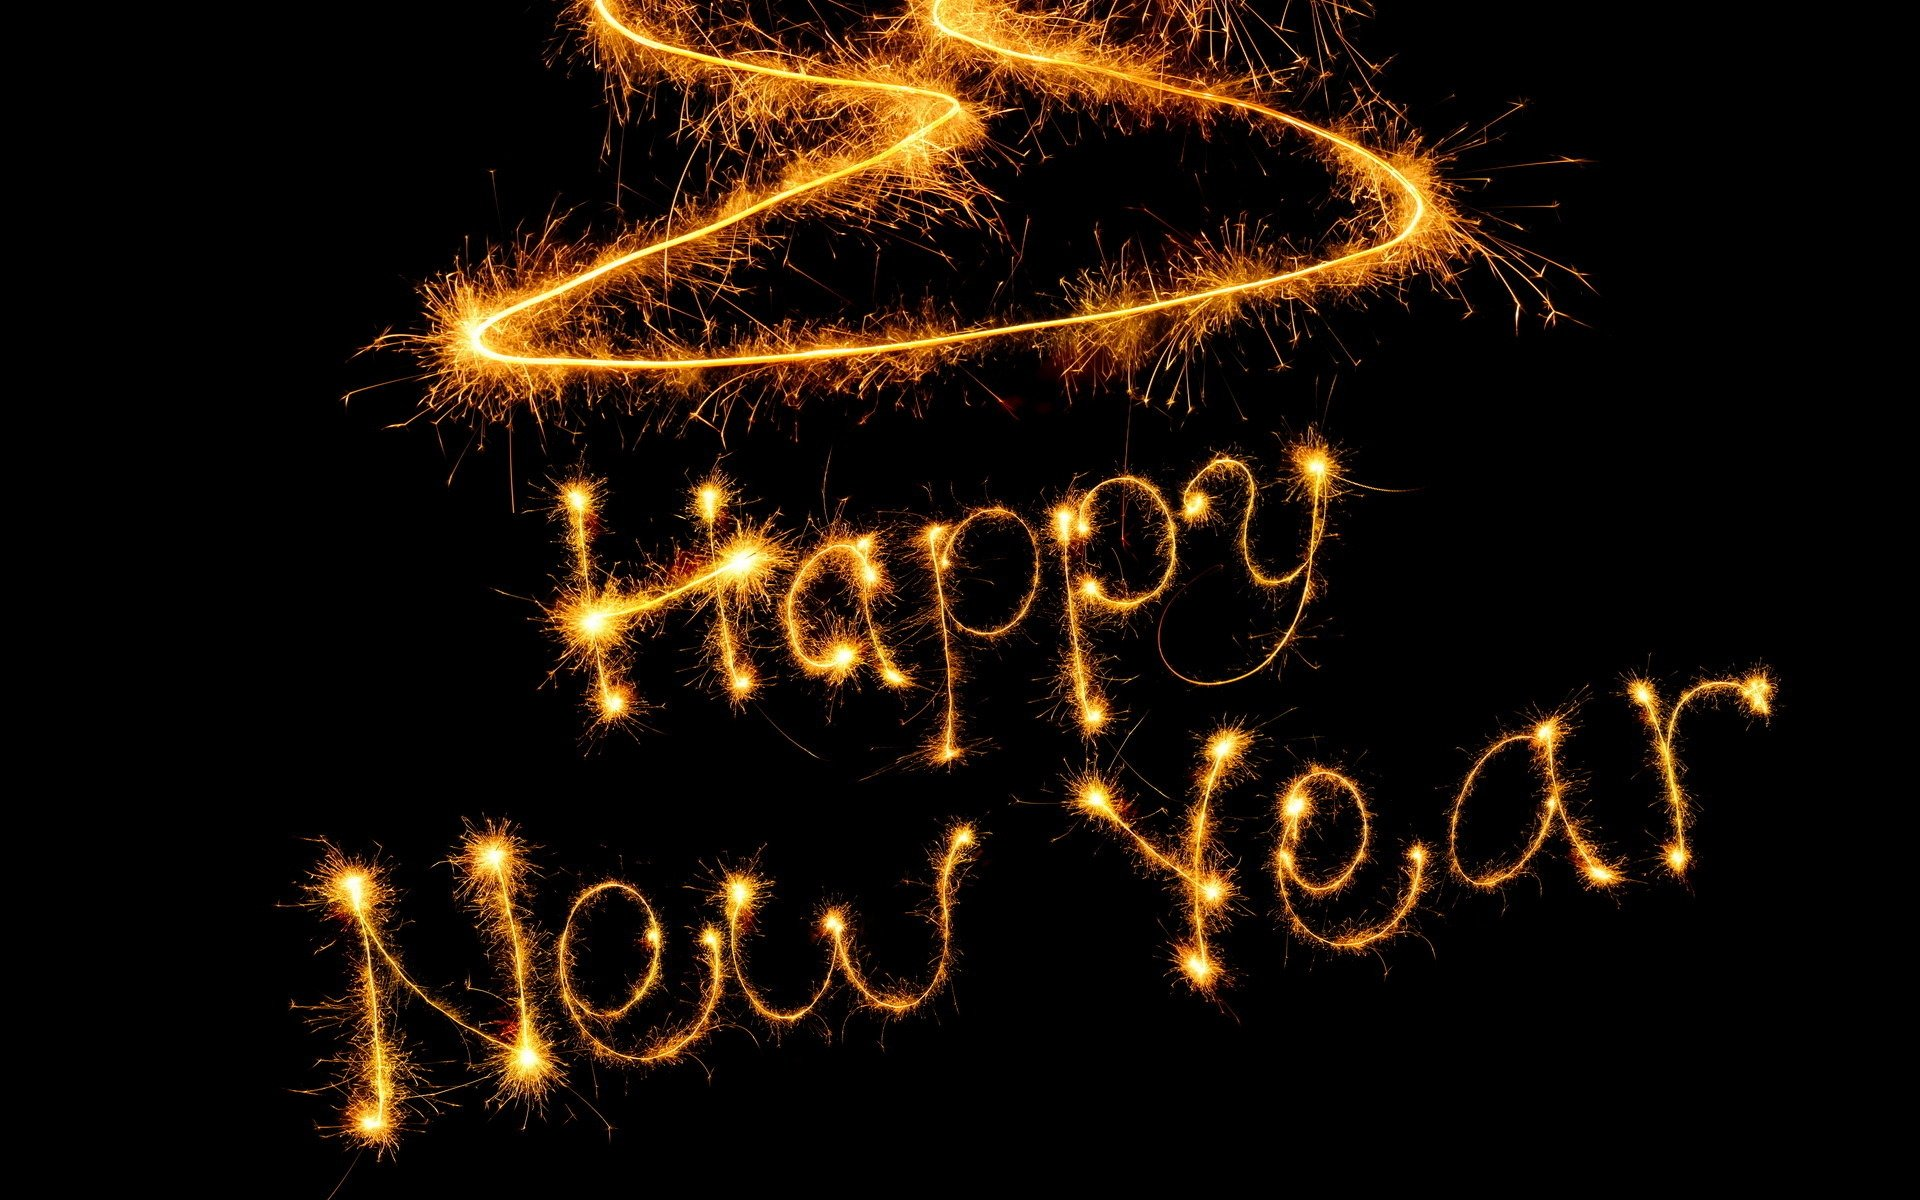 Happy New Year 2015 Images   Happy New Year 2015 1920x1200